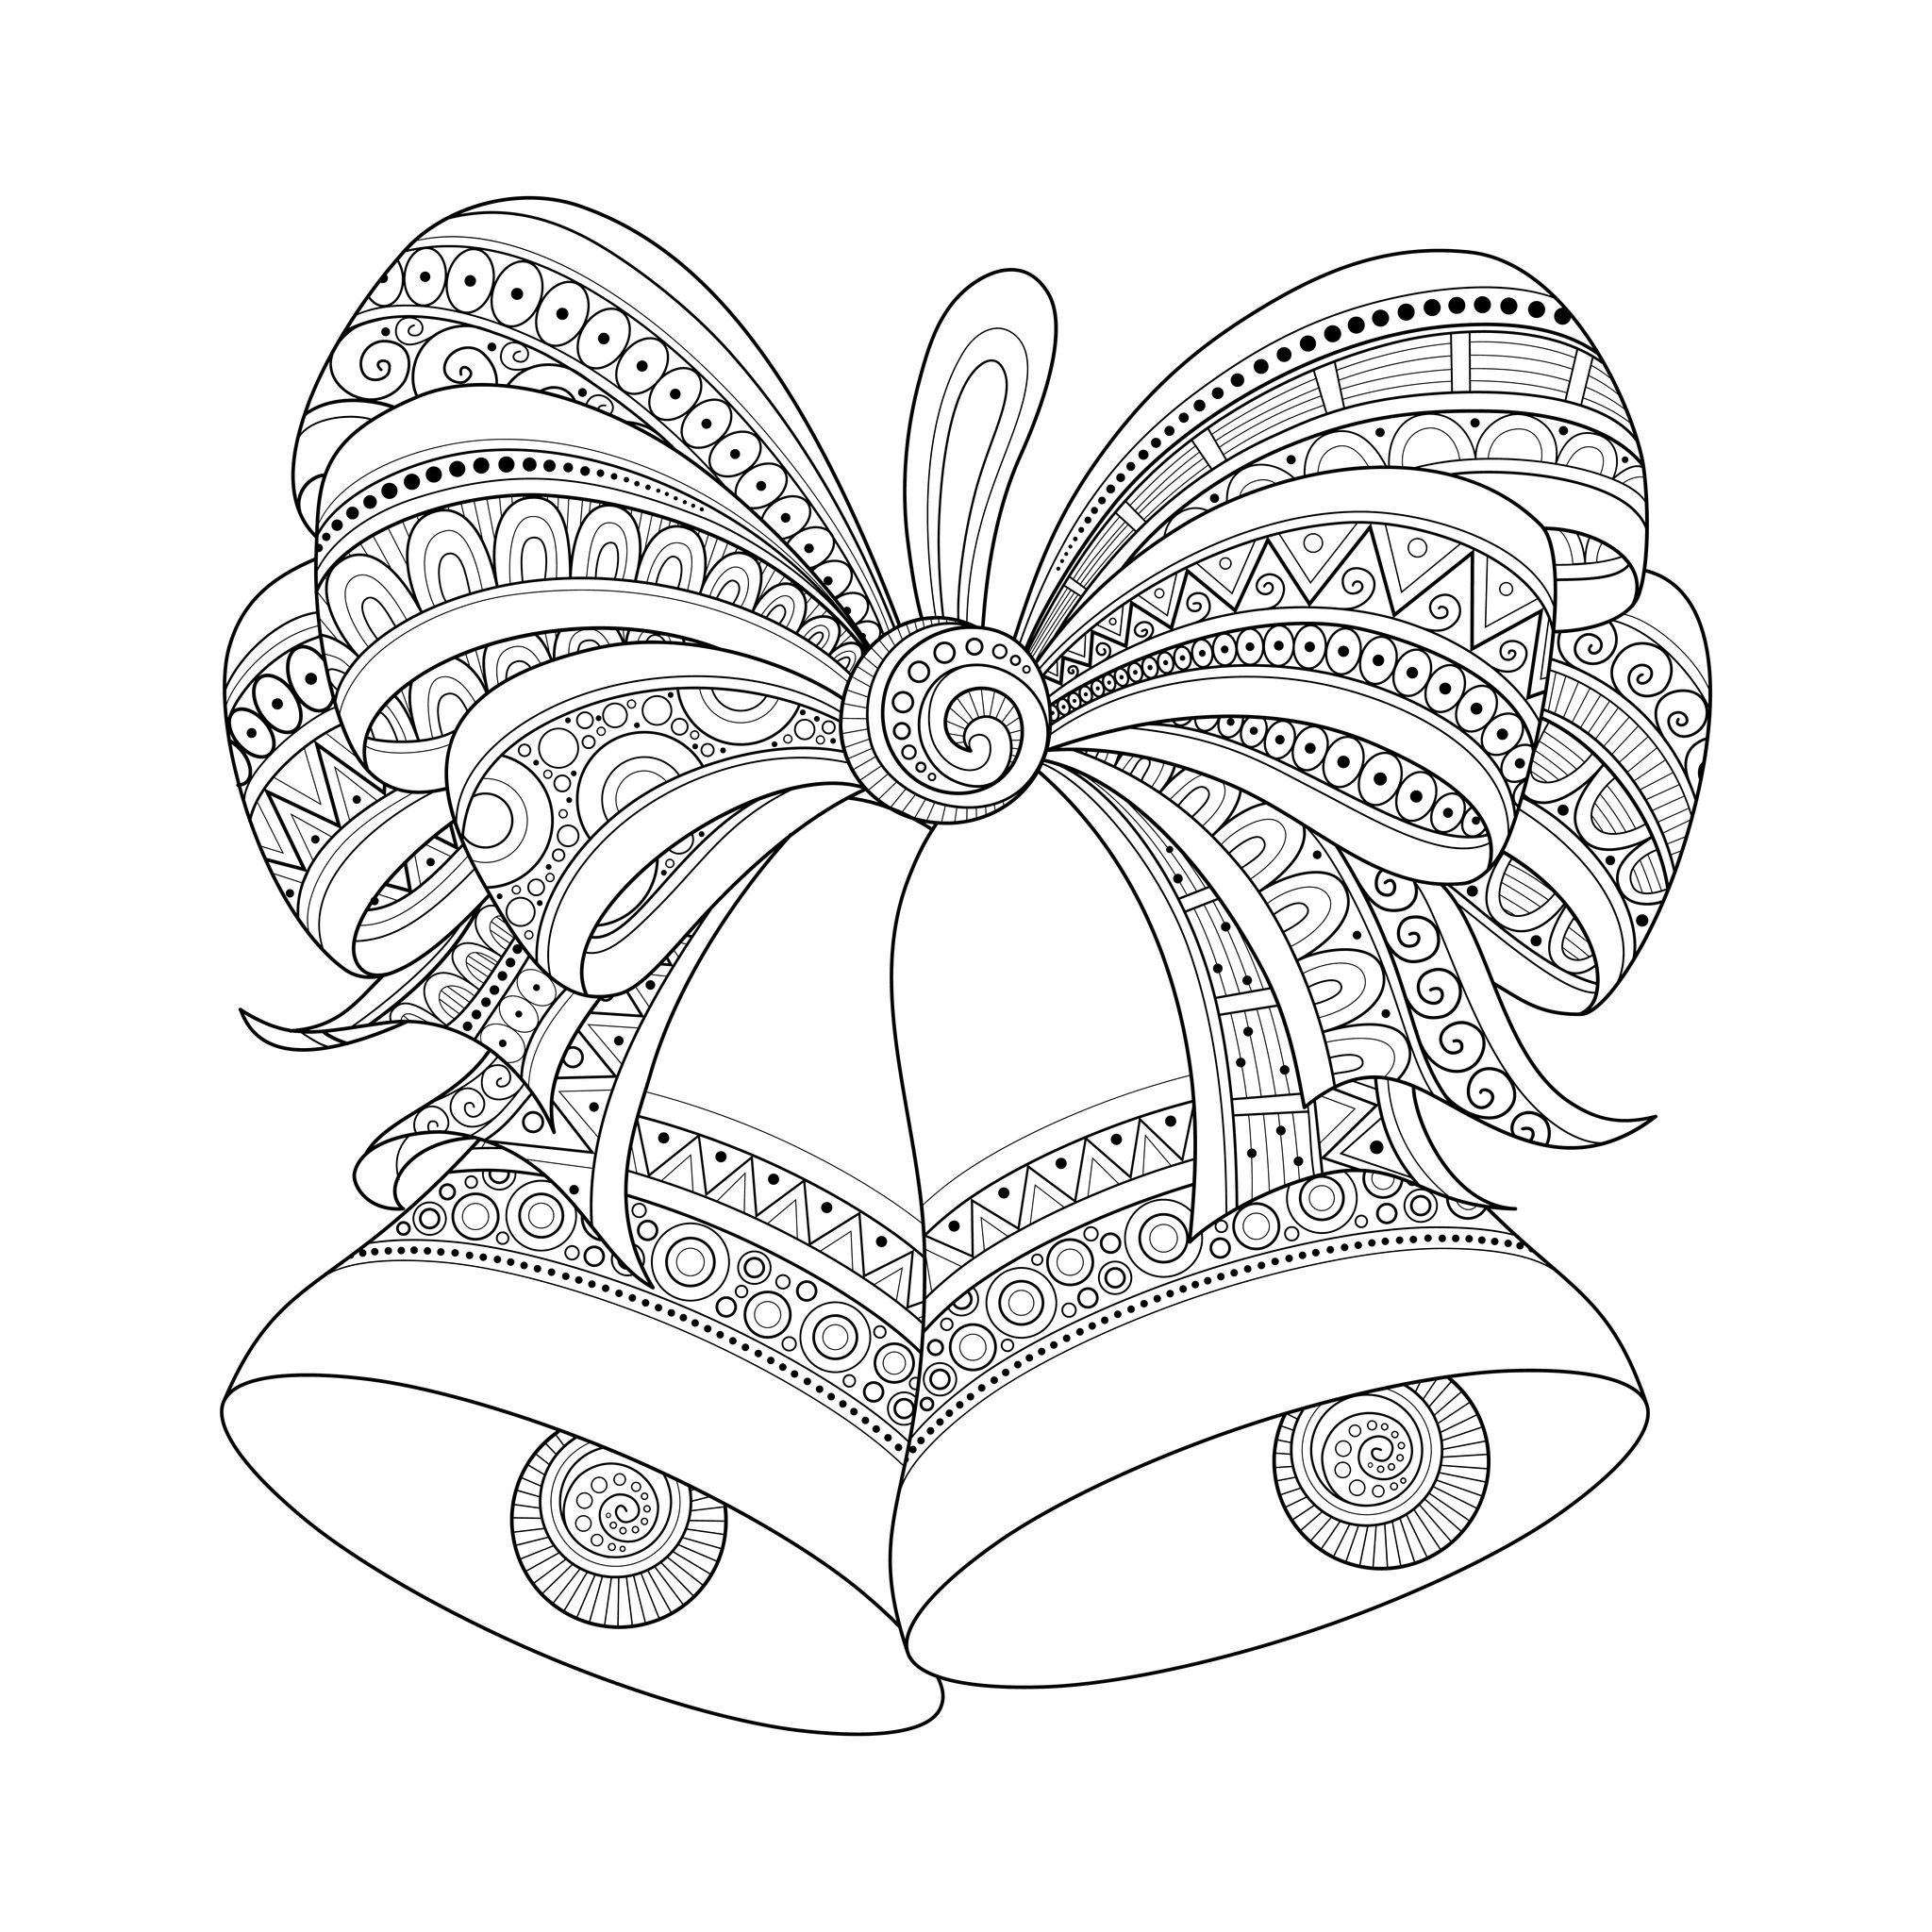 Our Most Popular Coloring Pages